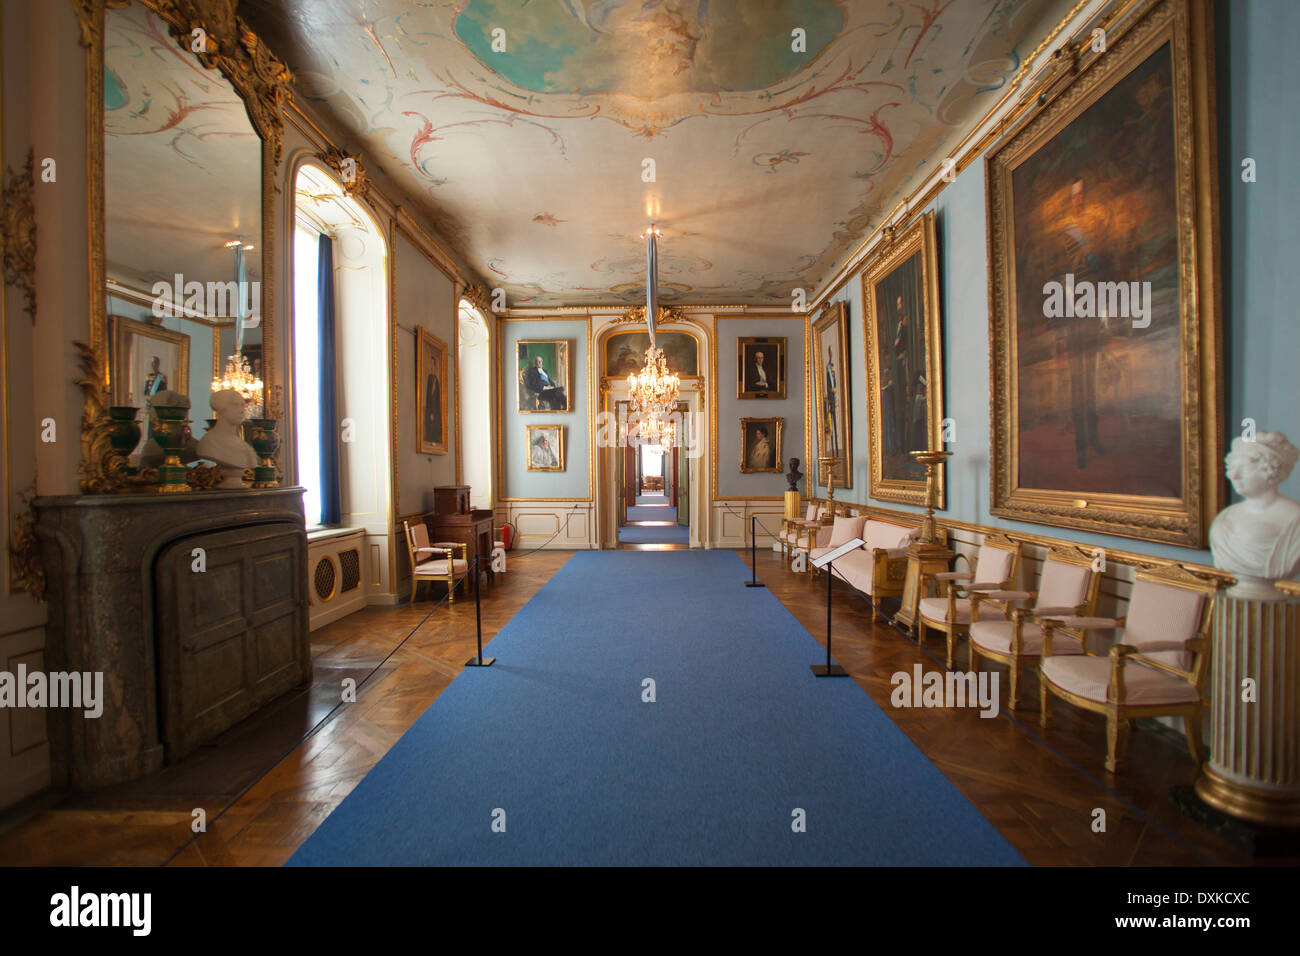 Ordinaire Sweden, Stockholm, Royal Palace Interiors   Stock Image